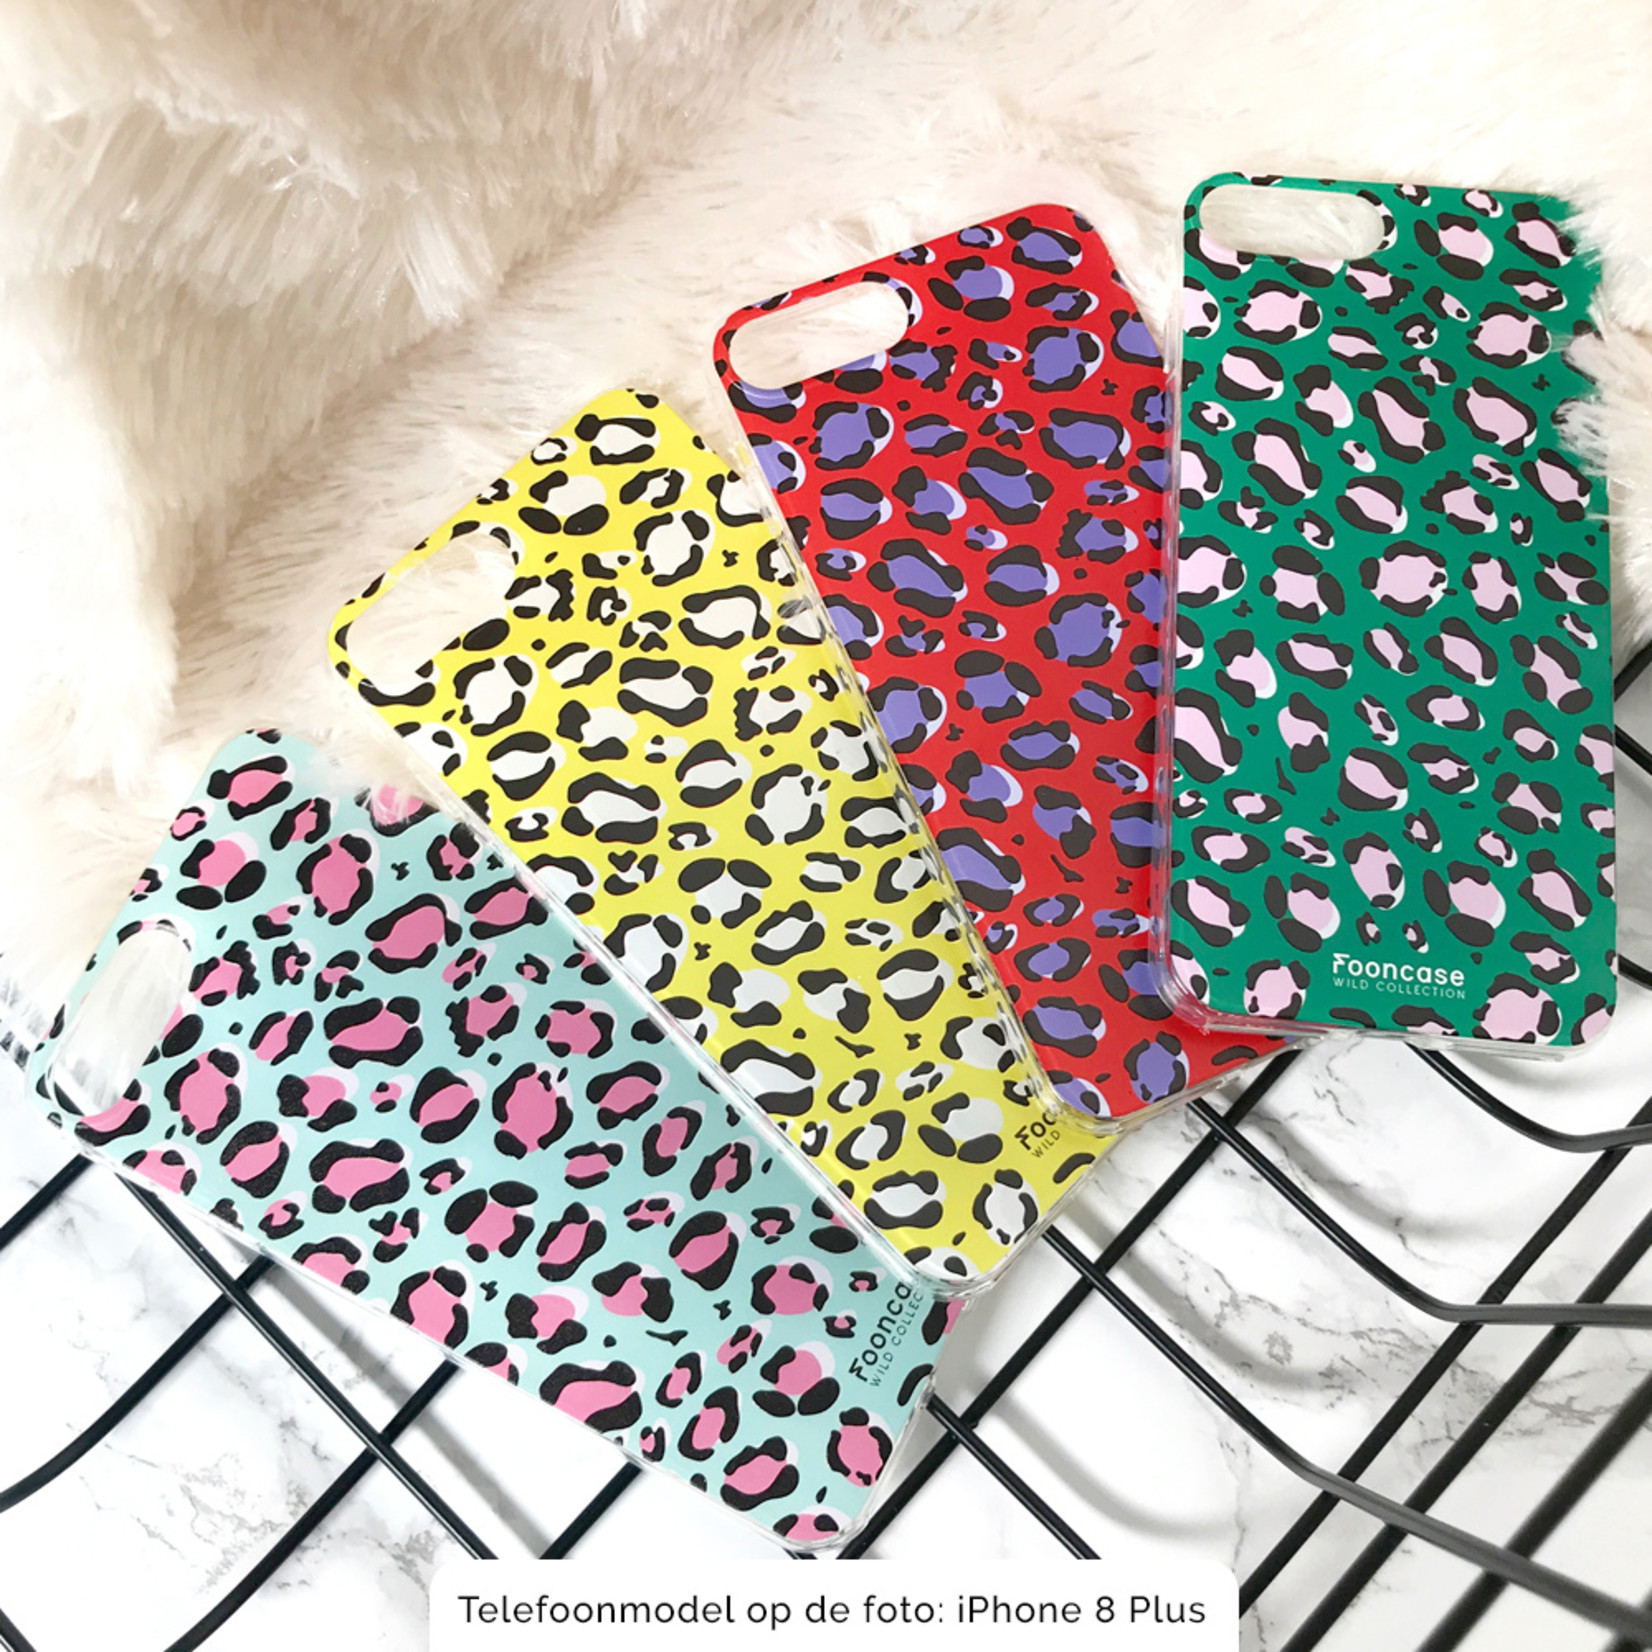 FOONCASE iPhone X hoesje TPU Soft Case - Back Cover - WILD COLLECTION / Luipaard / Leopard print / Blauw